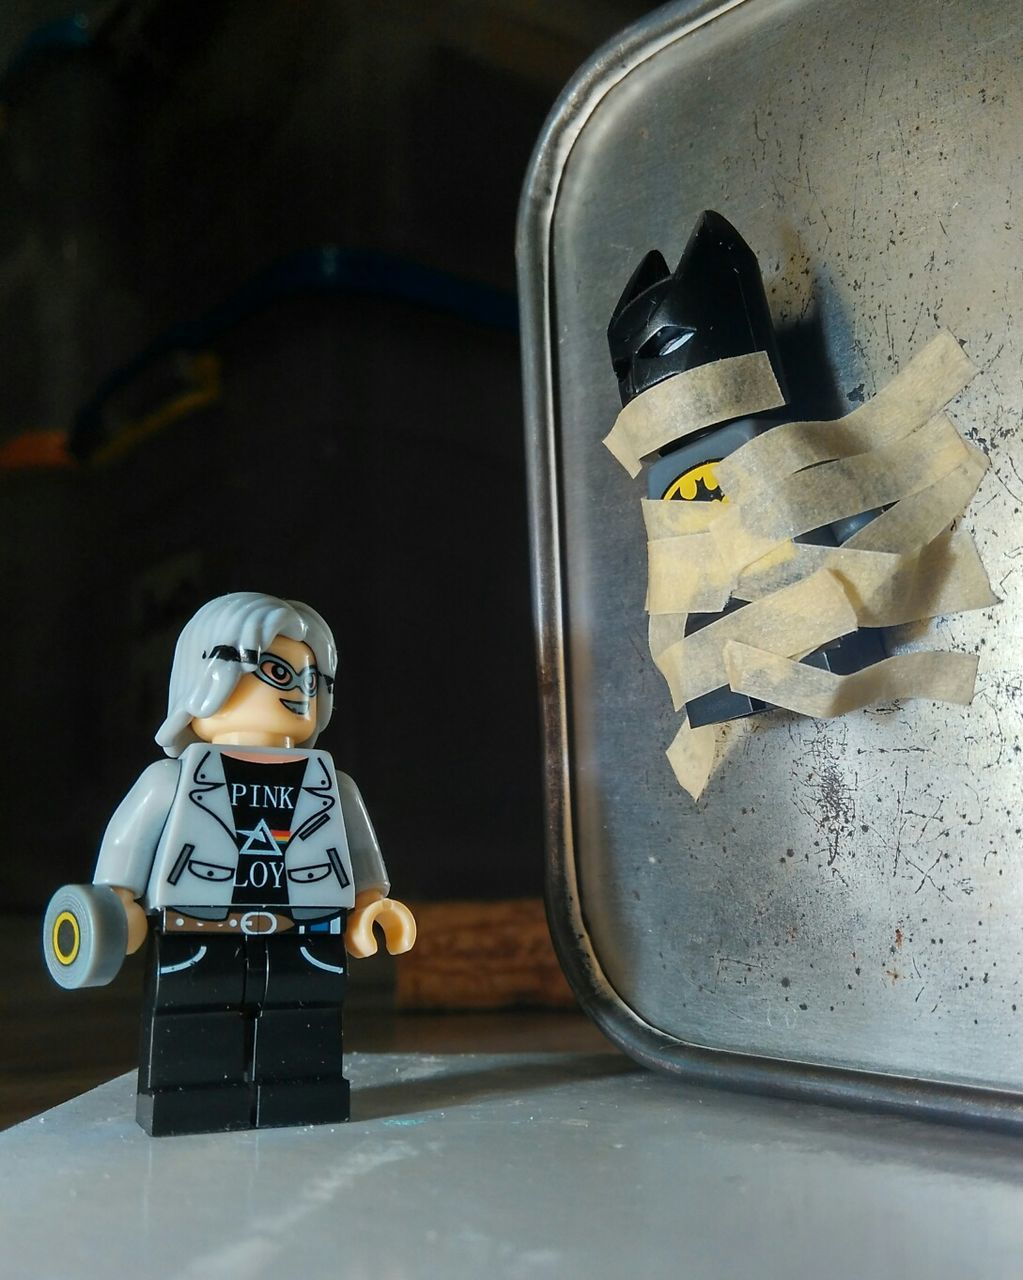 human representation, male likeness, indoors, no people, domestic kitchen, childhood, sculpture, close-up, day